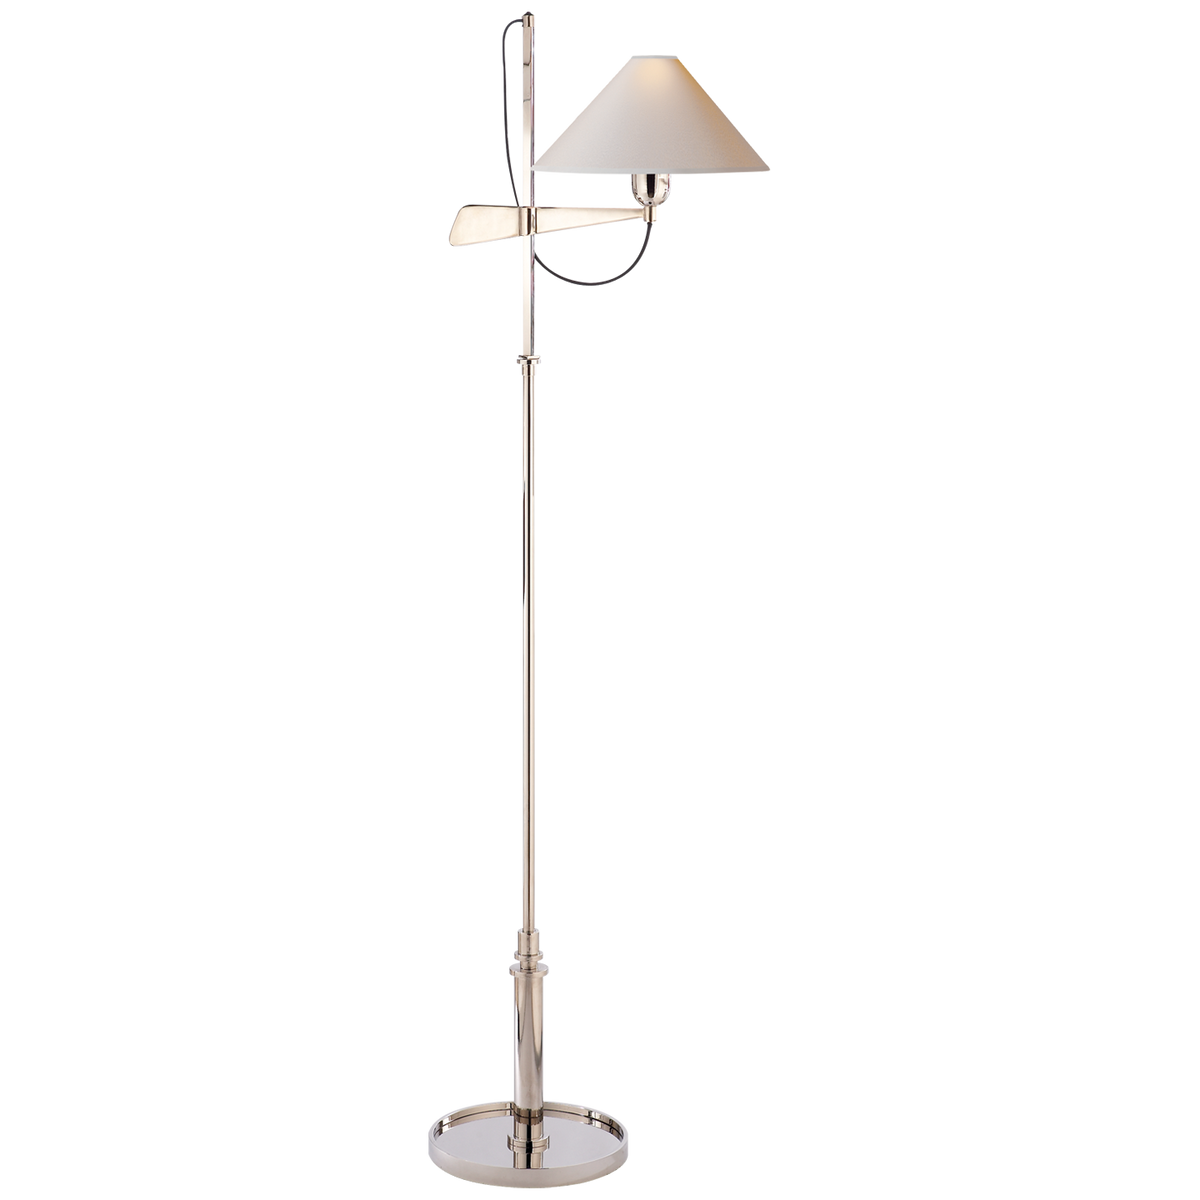 Hargett Bridge Arm Floor Lamp in Polished Nickel with Natural Paper Shade